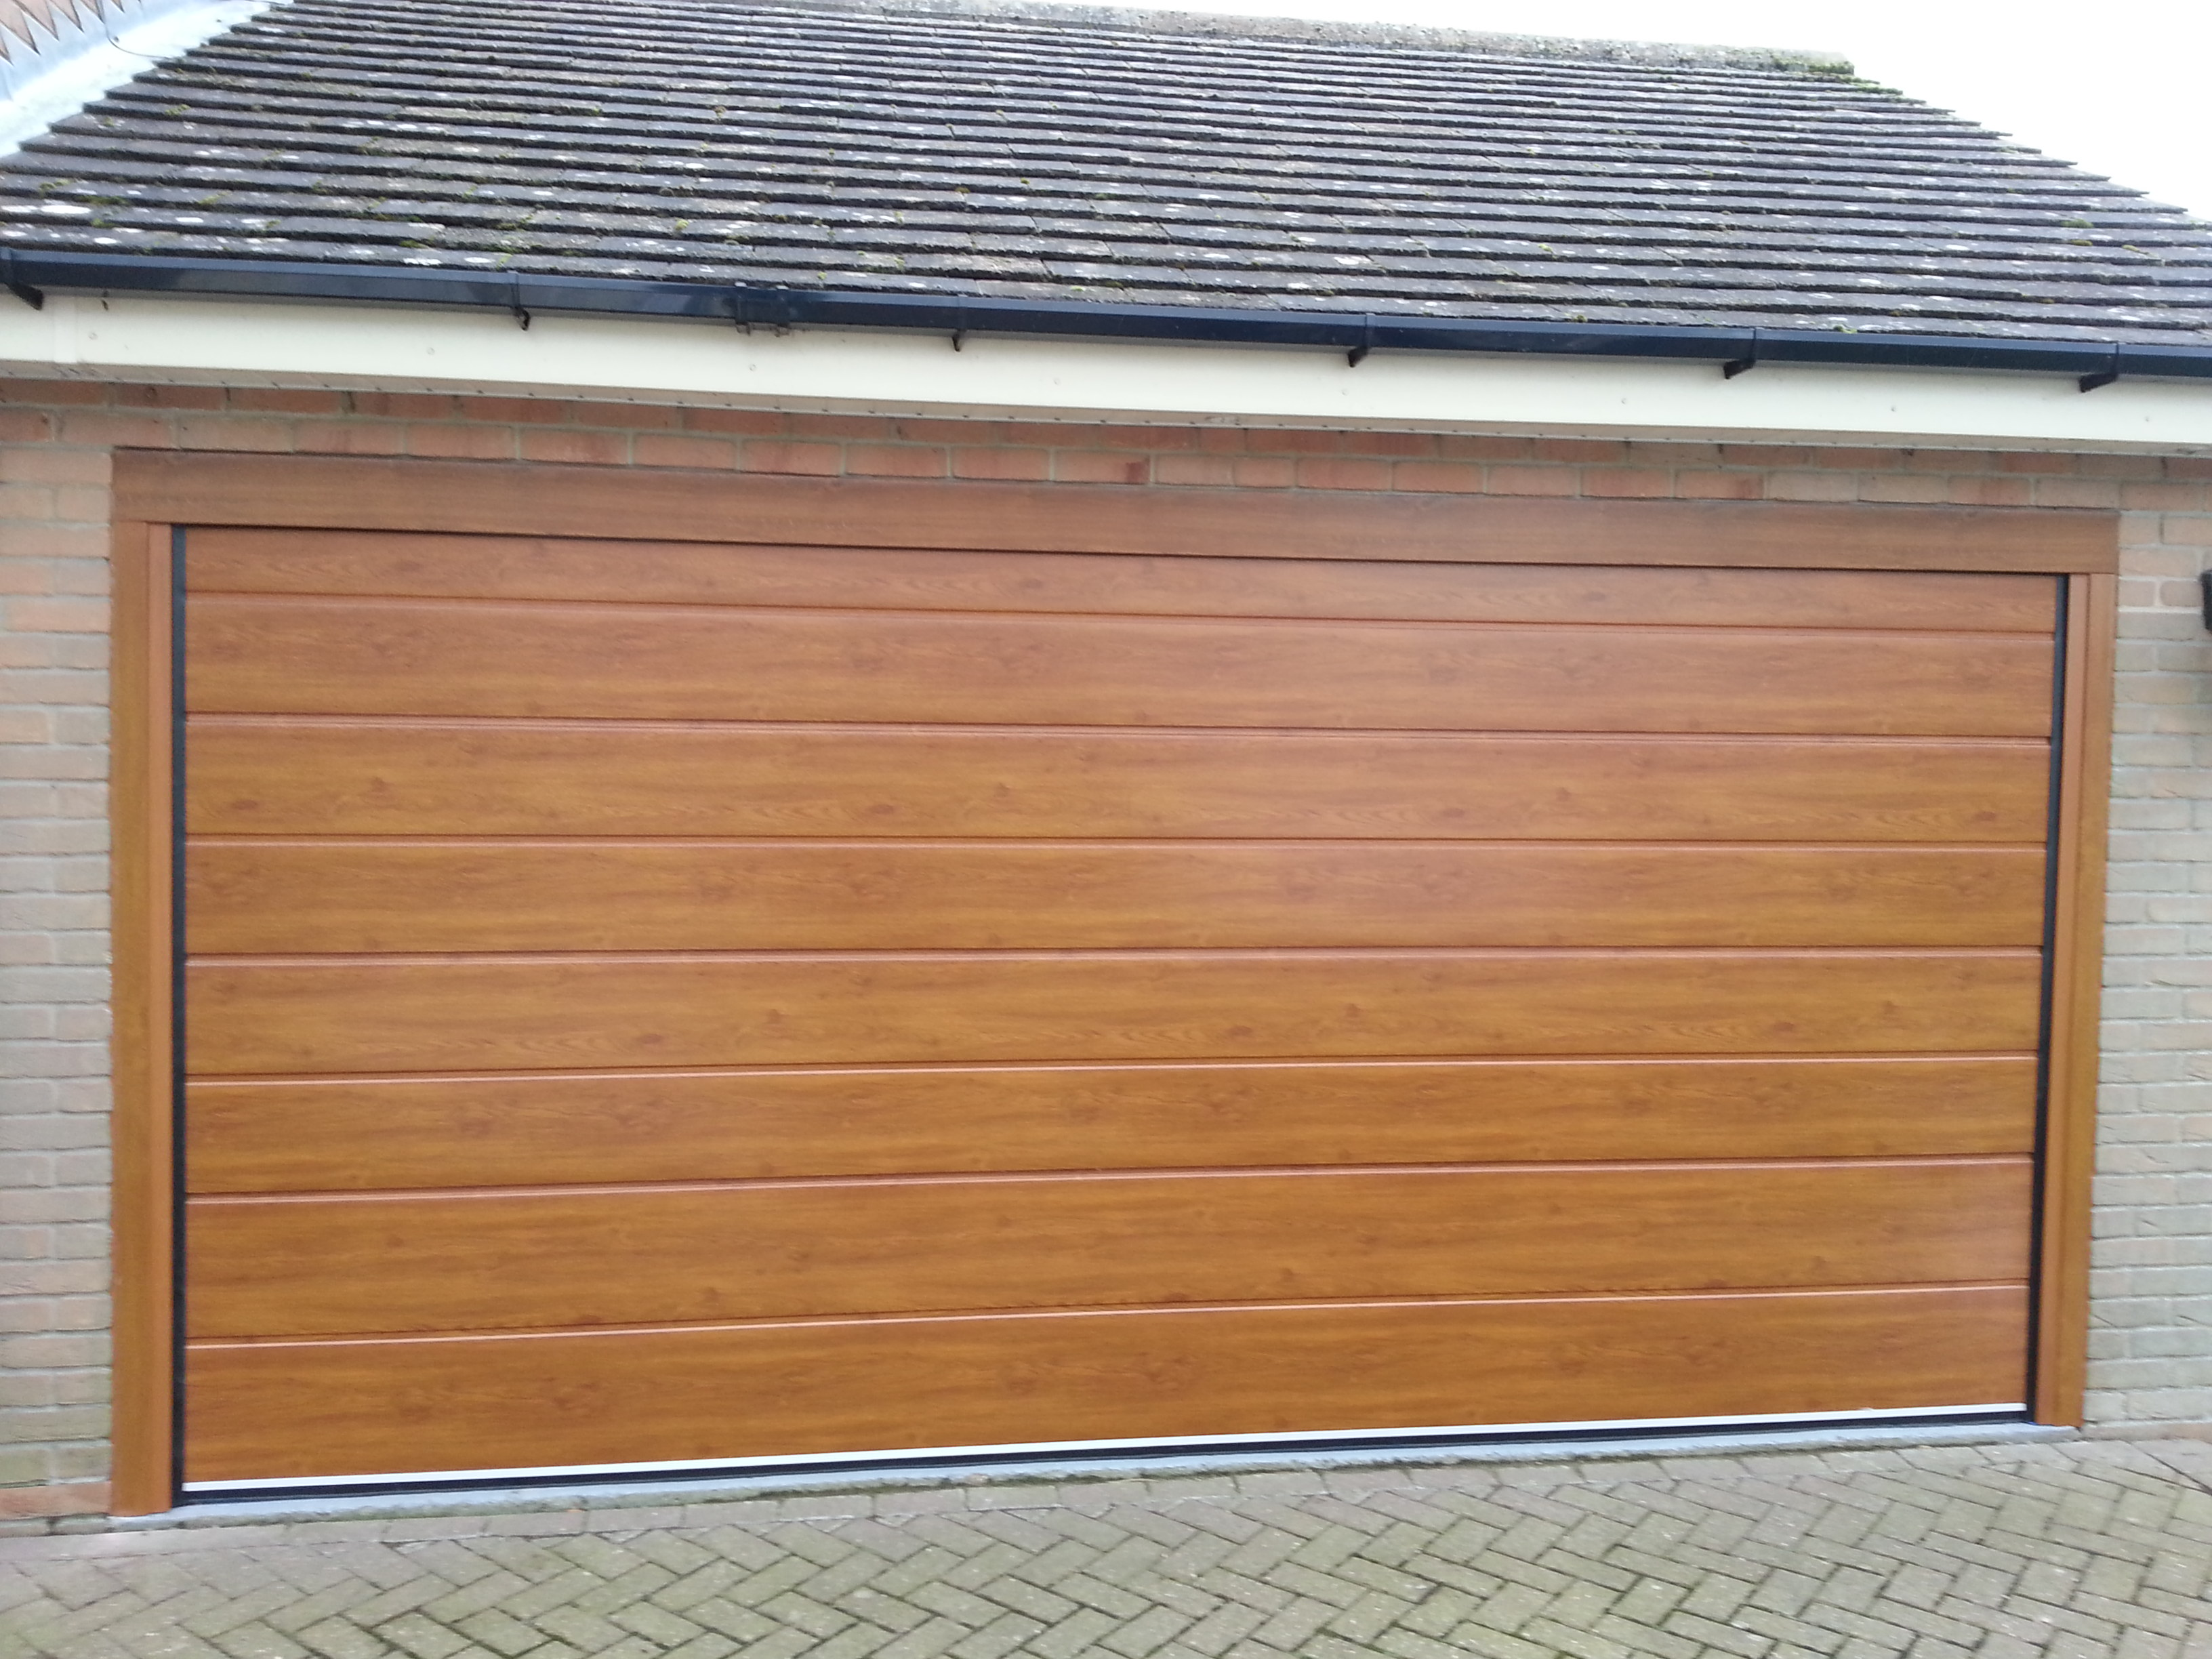 2448 #91613A New Insulated Garage Door – Grantham East Midlands – Garage Door  picture/photo Oak Garage Doors 38493264